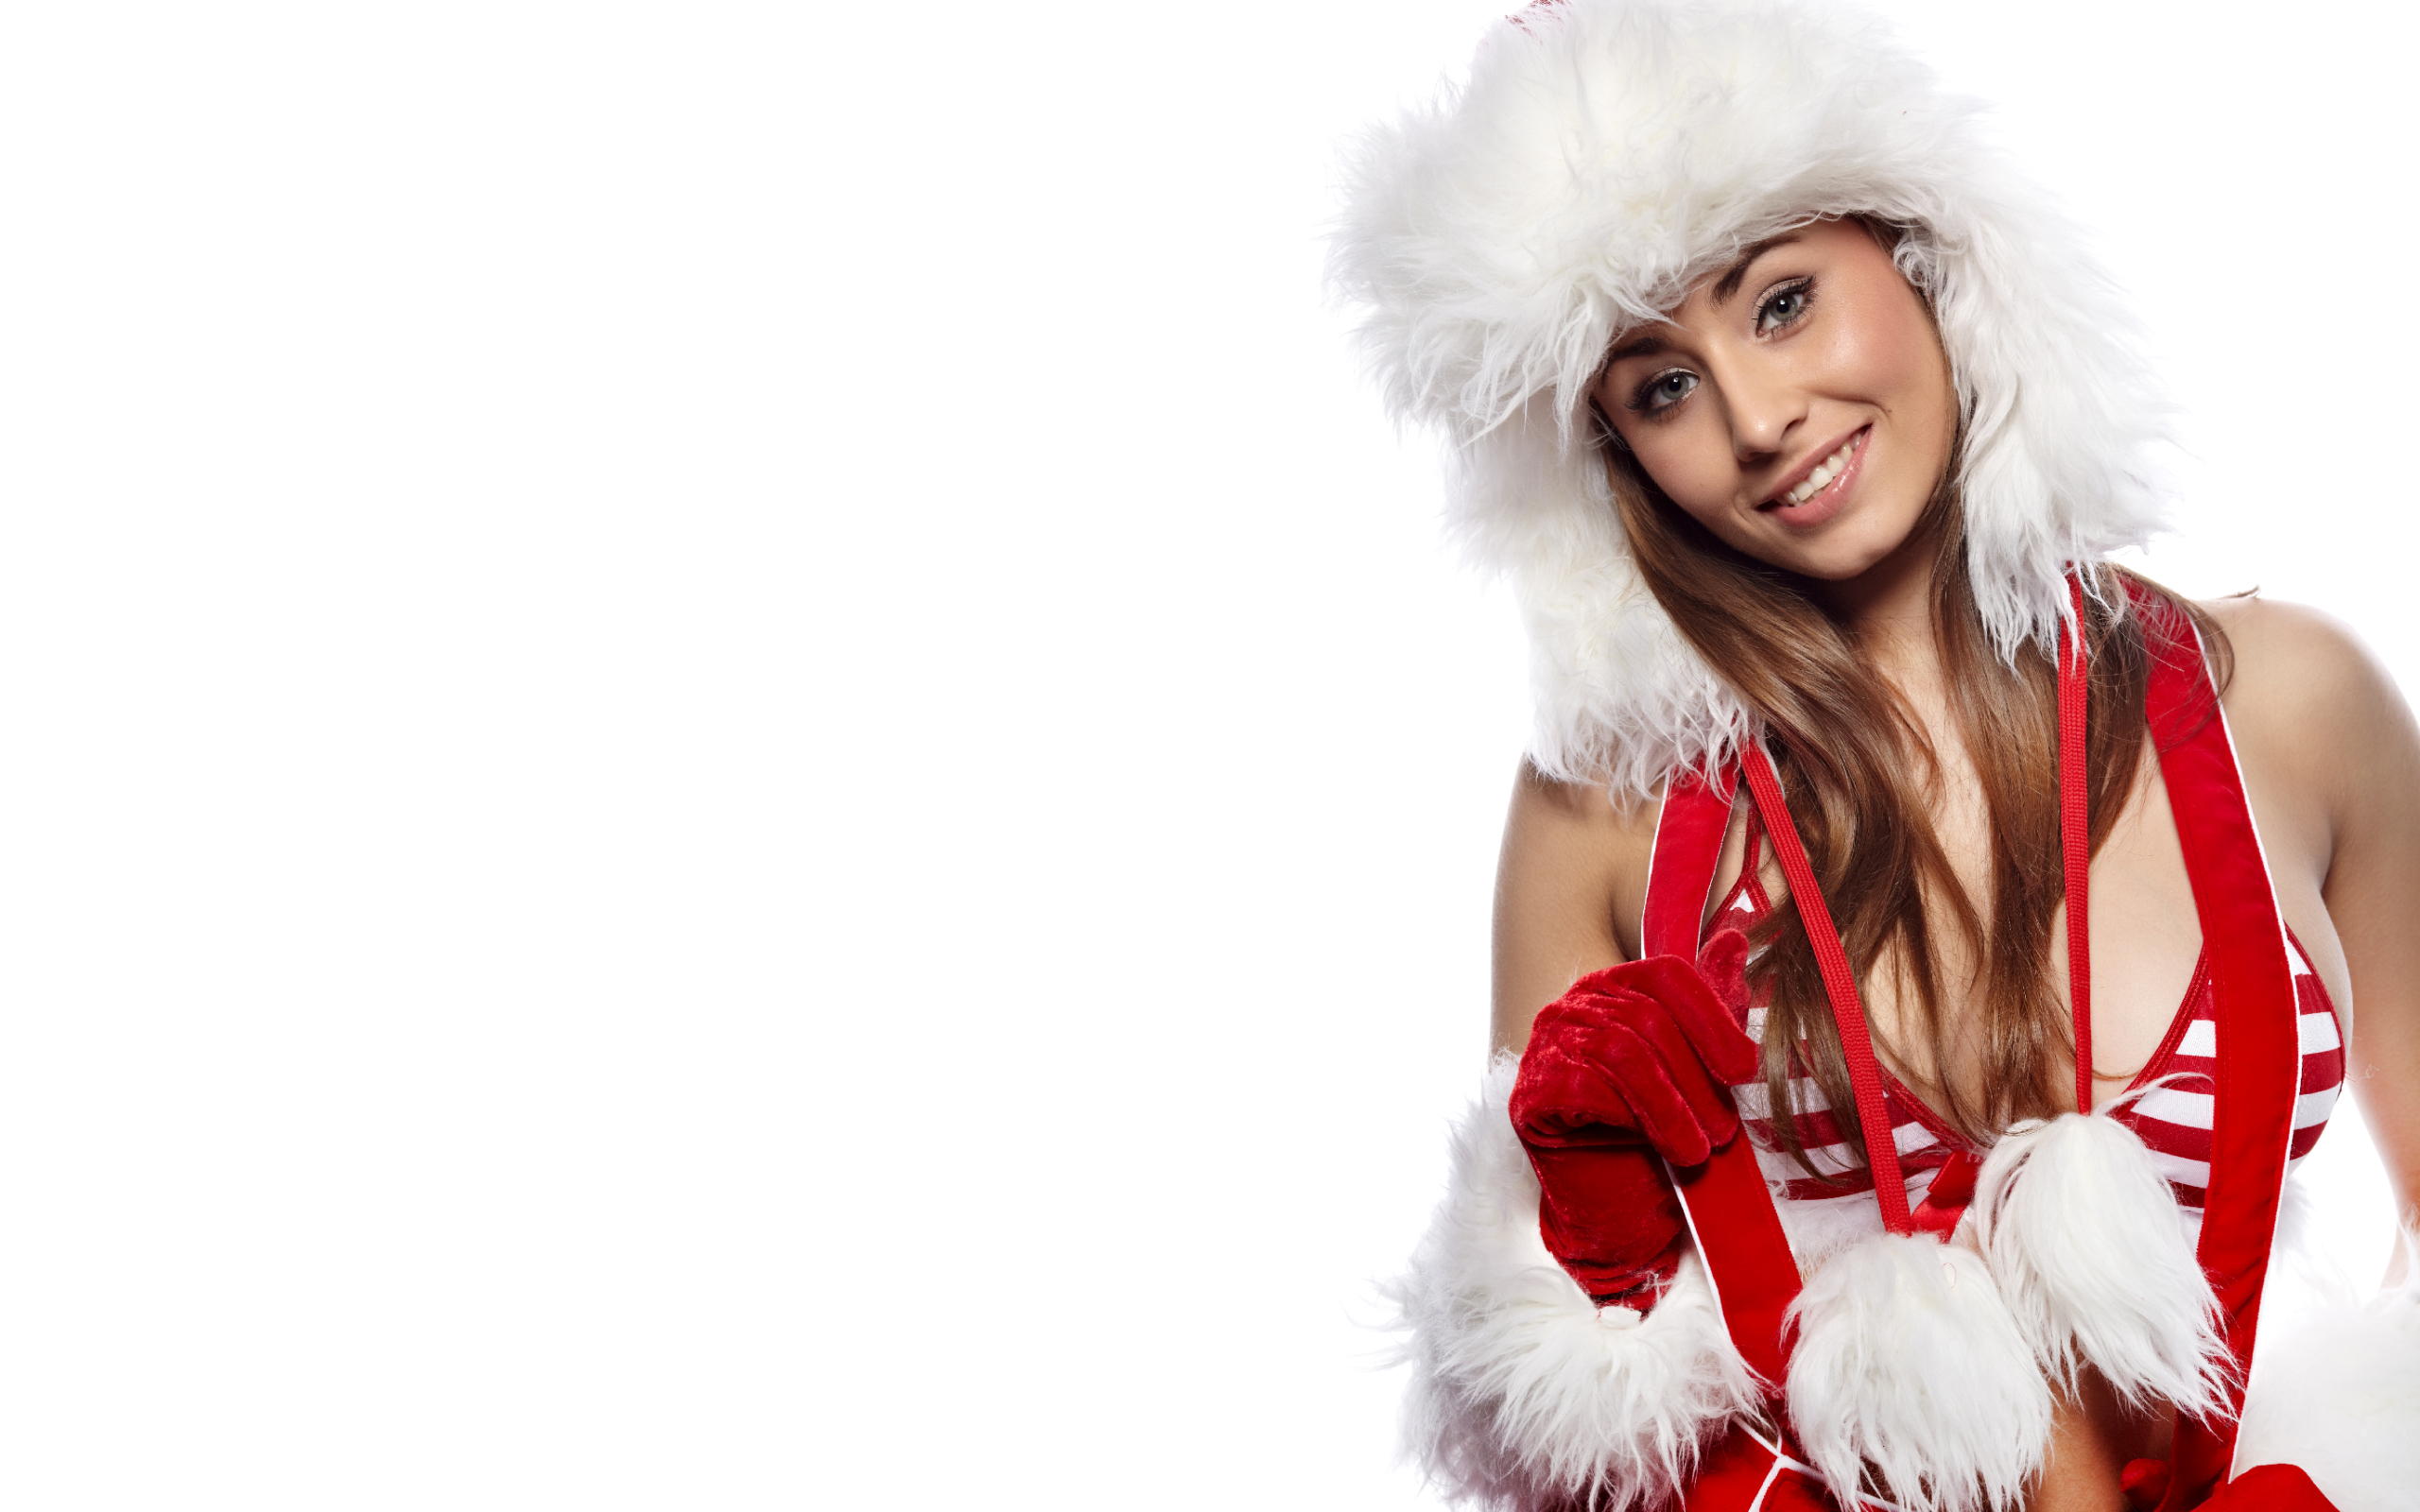 Hd Wallpapers Christmas And Happy New Year - Happy New Year Girl , HD Wallpaper & Backgrounds